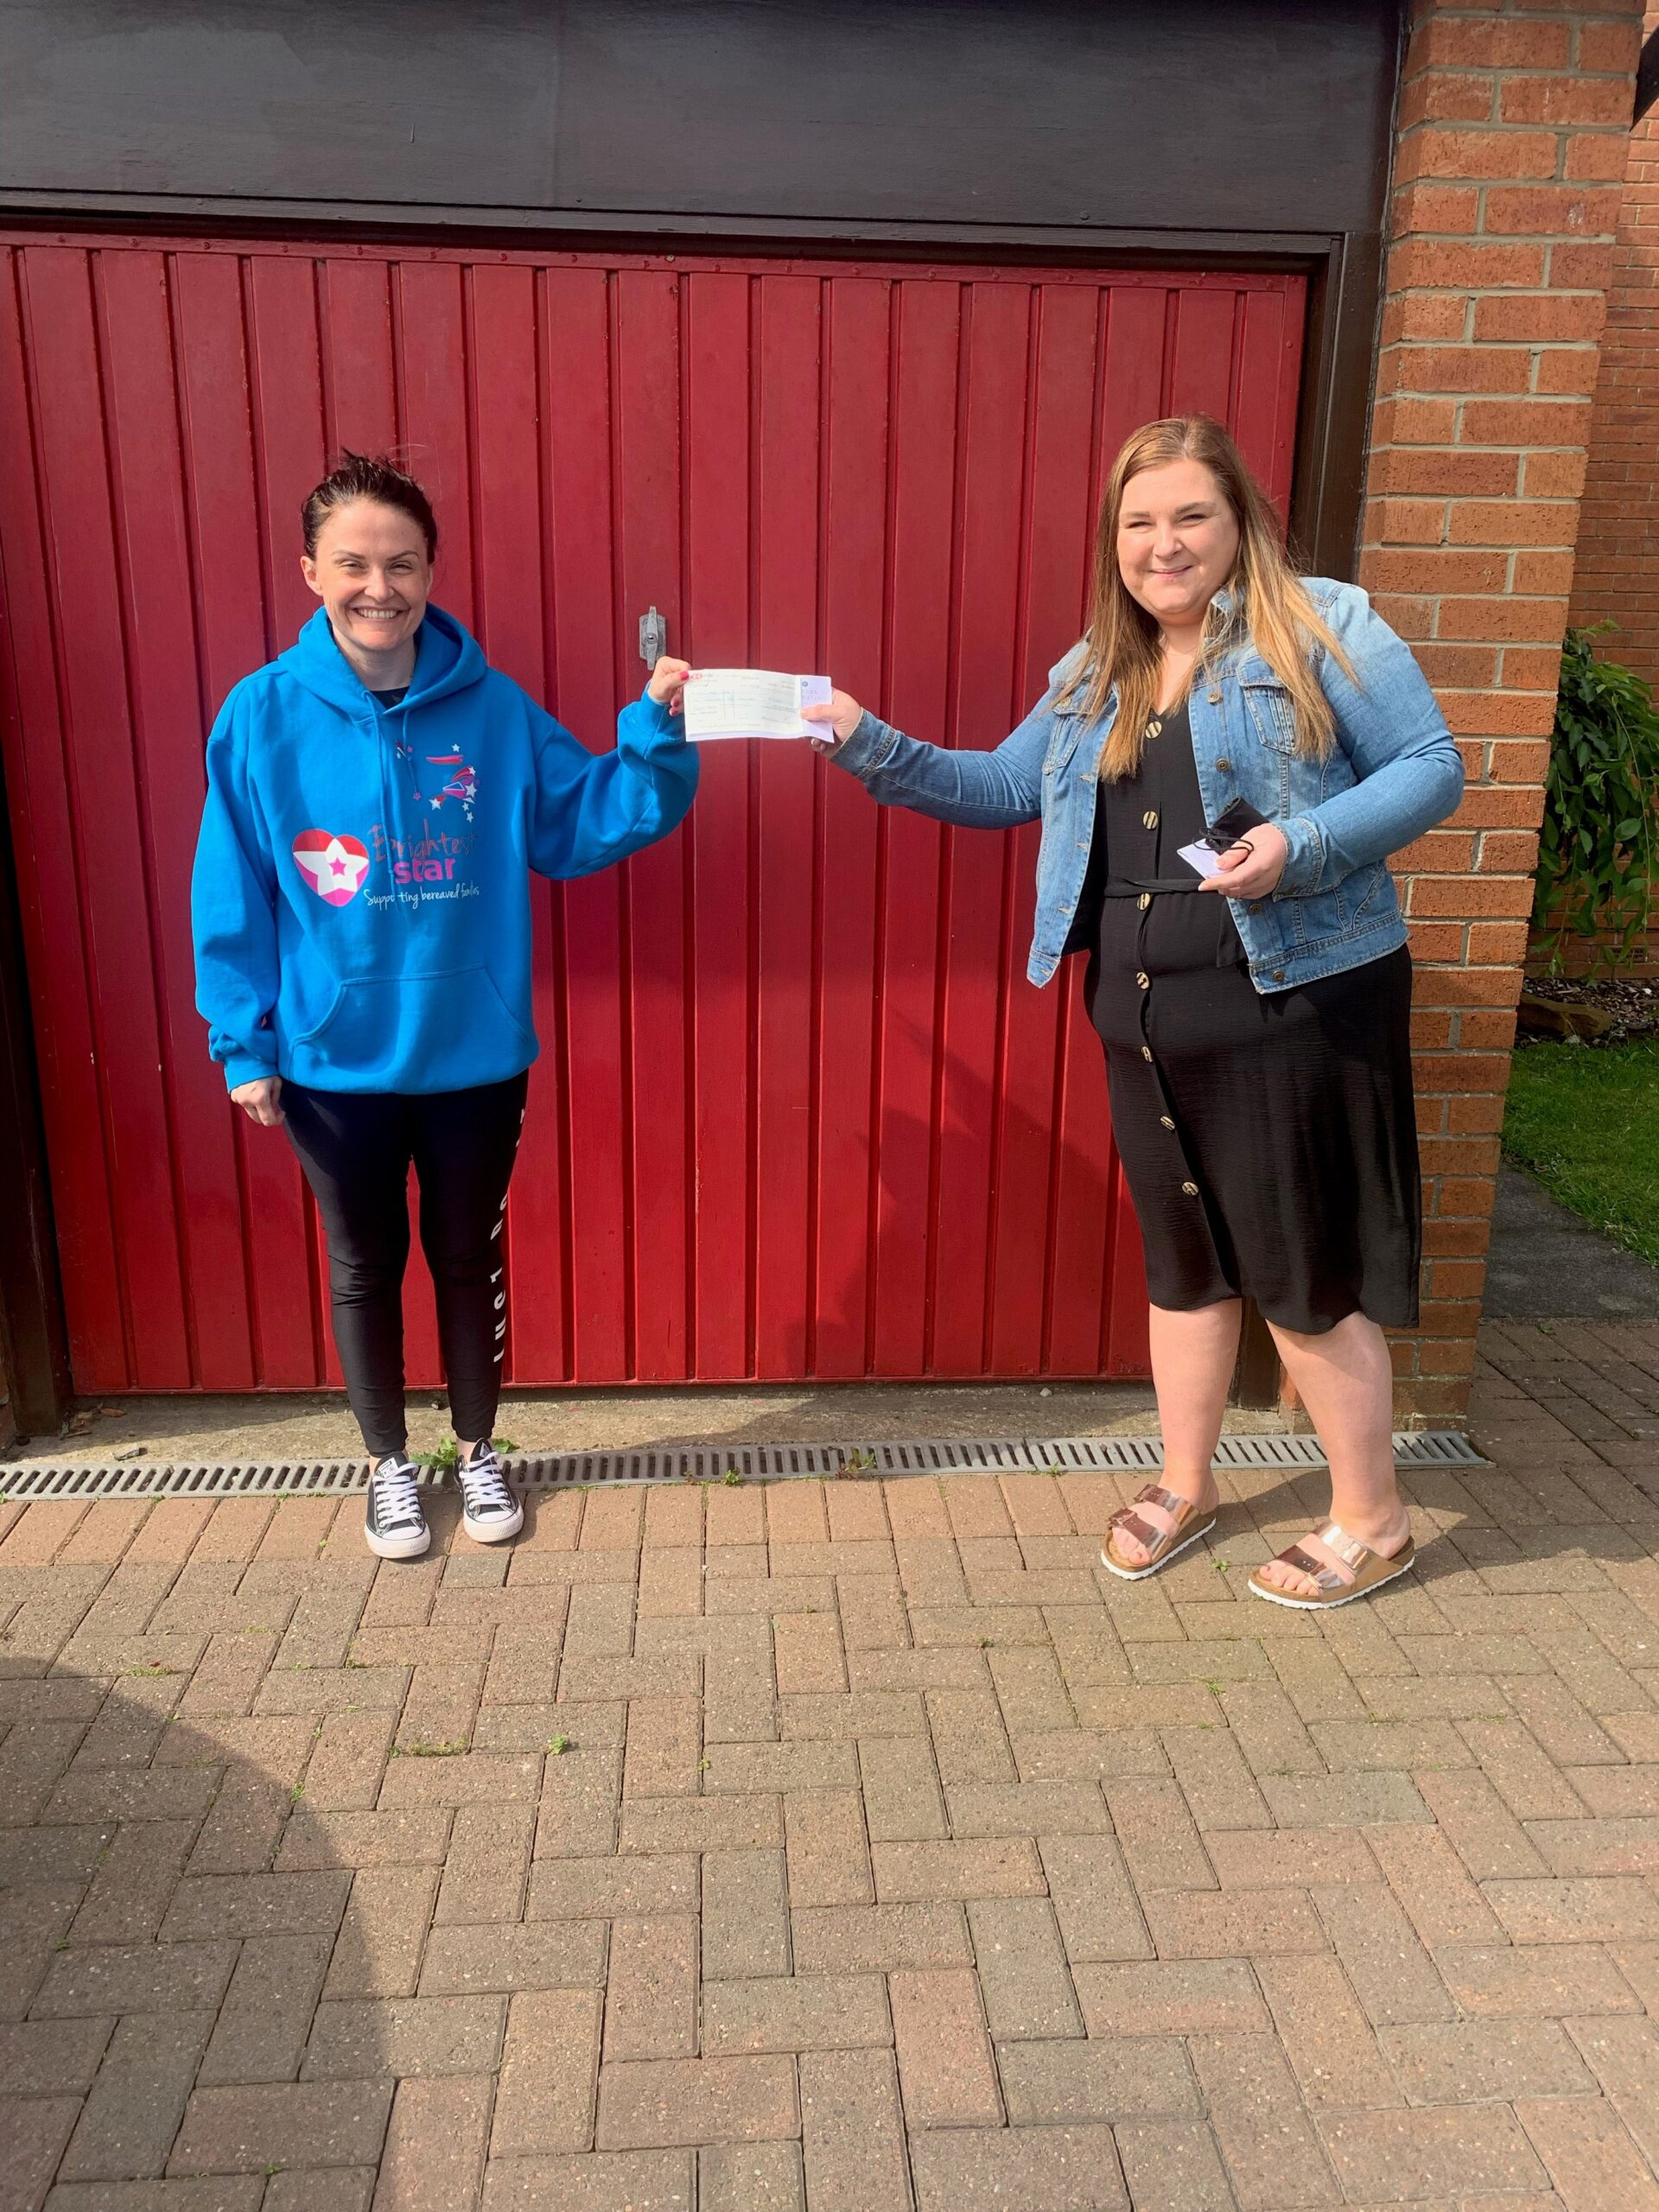 Pavers Foundation Donates £2,500 to Brightest Star